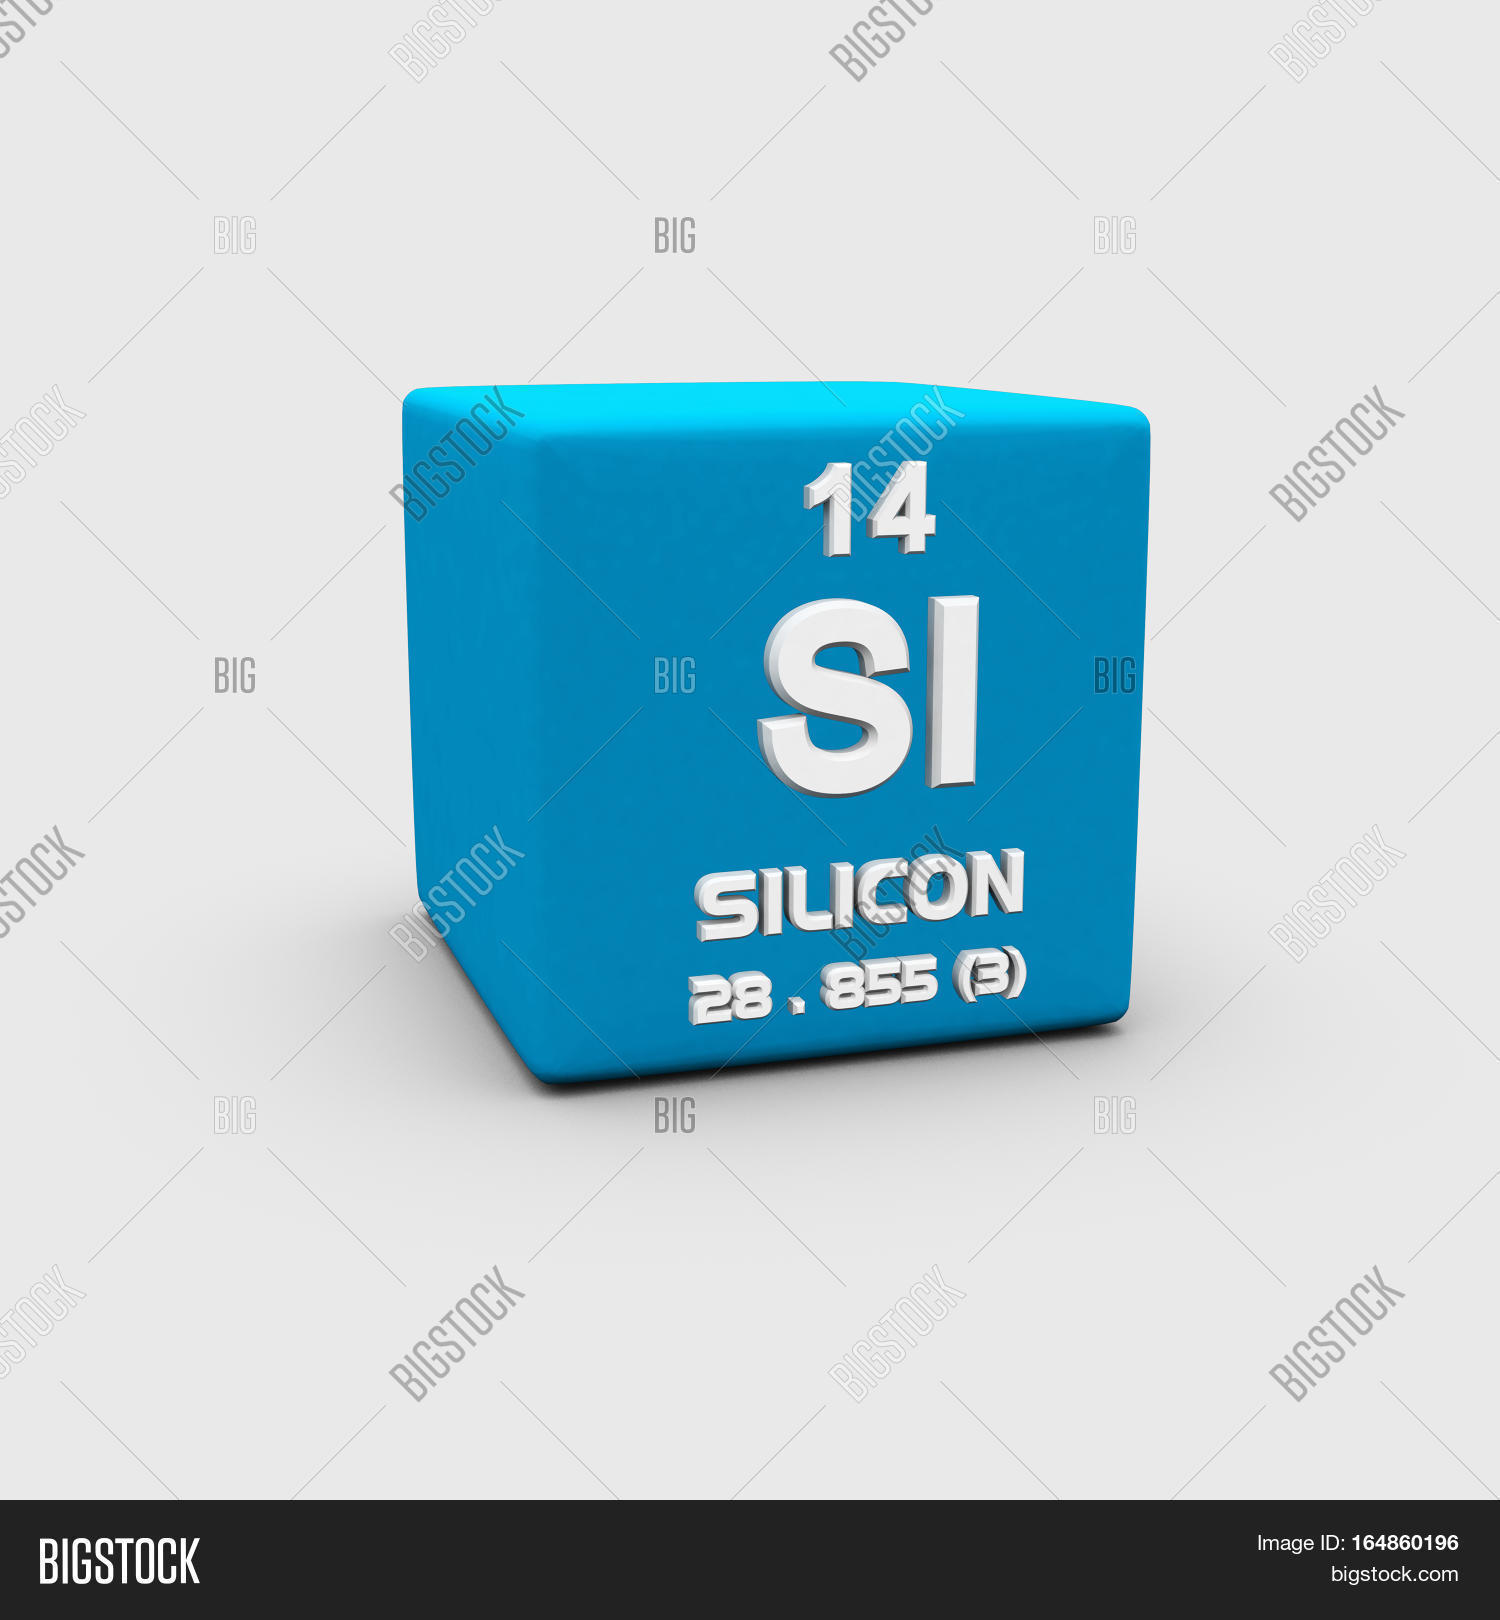 Silicon Chemical Image Photo Free Trial Bigstock